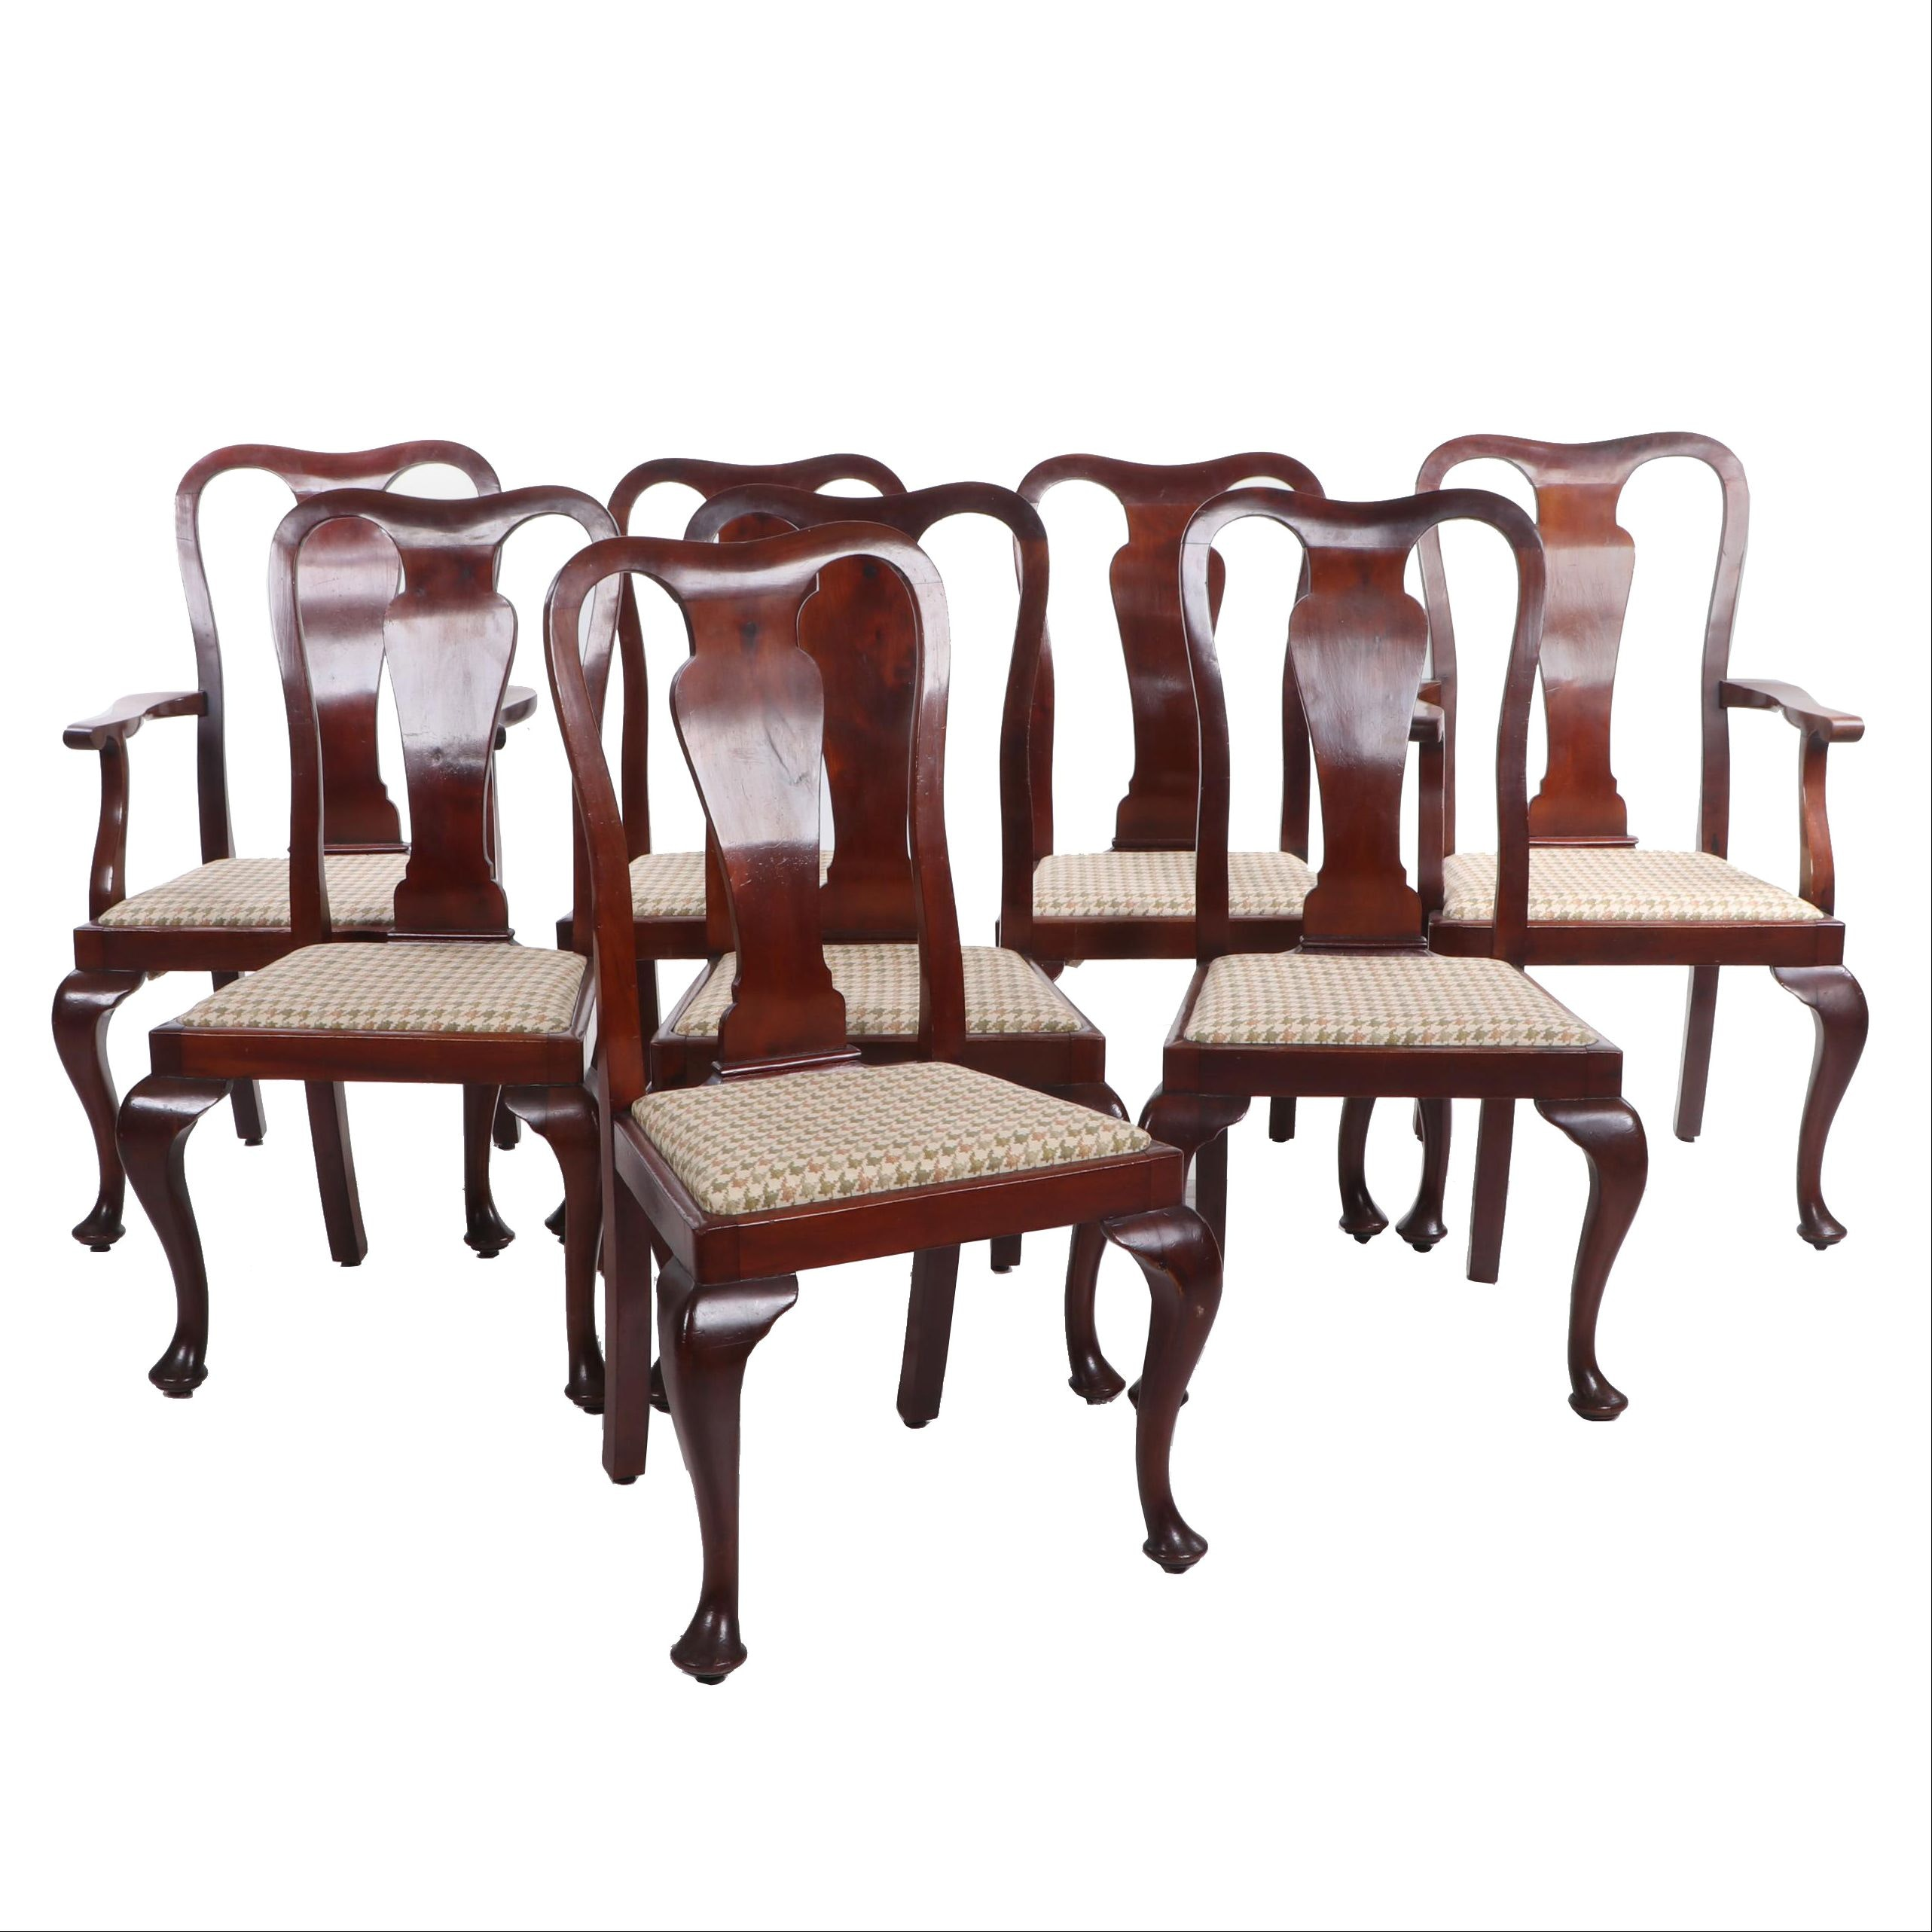 Set of Eight Queen Anne Style Mahogany-Finish Dining Chairs, Late 20th Century